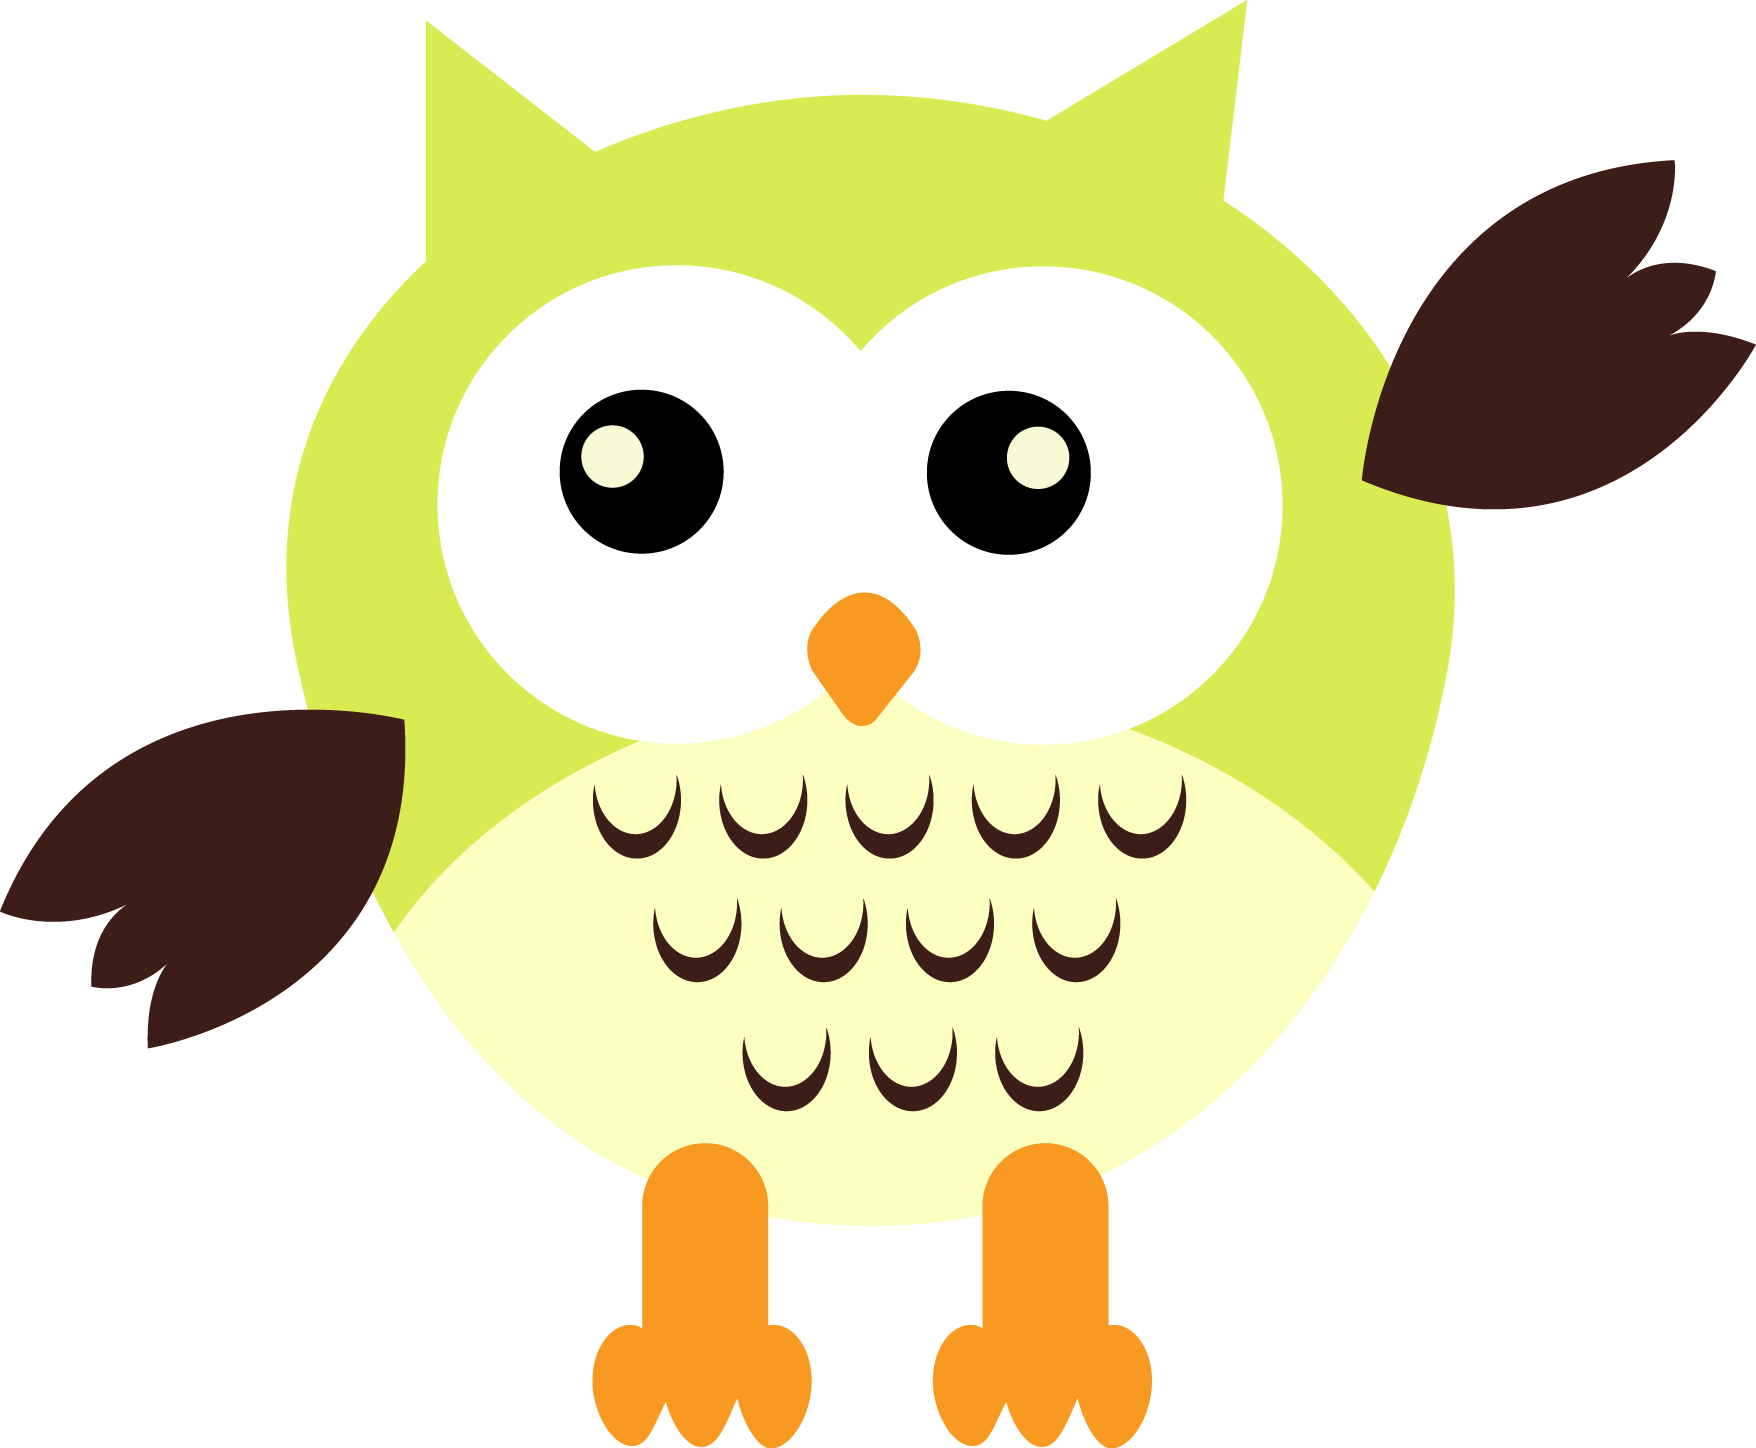 Owl with crown clipart banner freeuse library Download Owl Clipart HQ PNG Image | FreePNGImg banner freeuse library